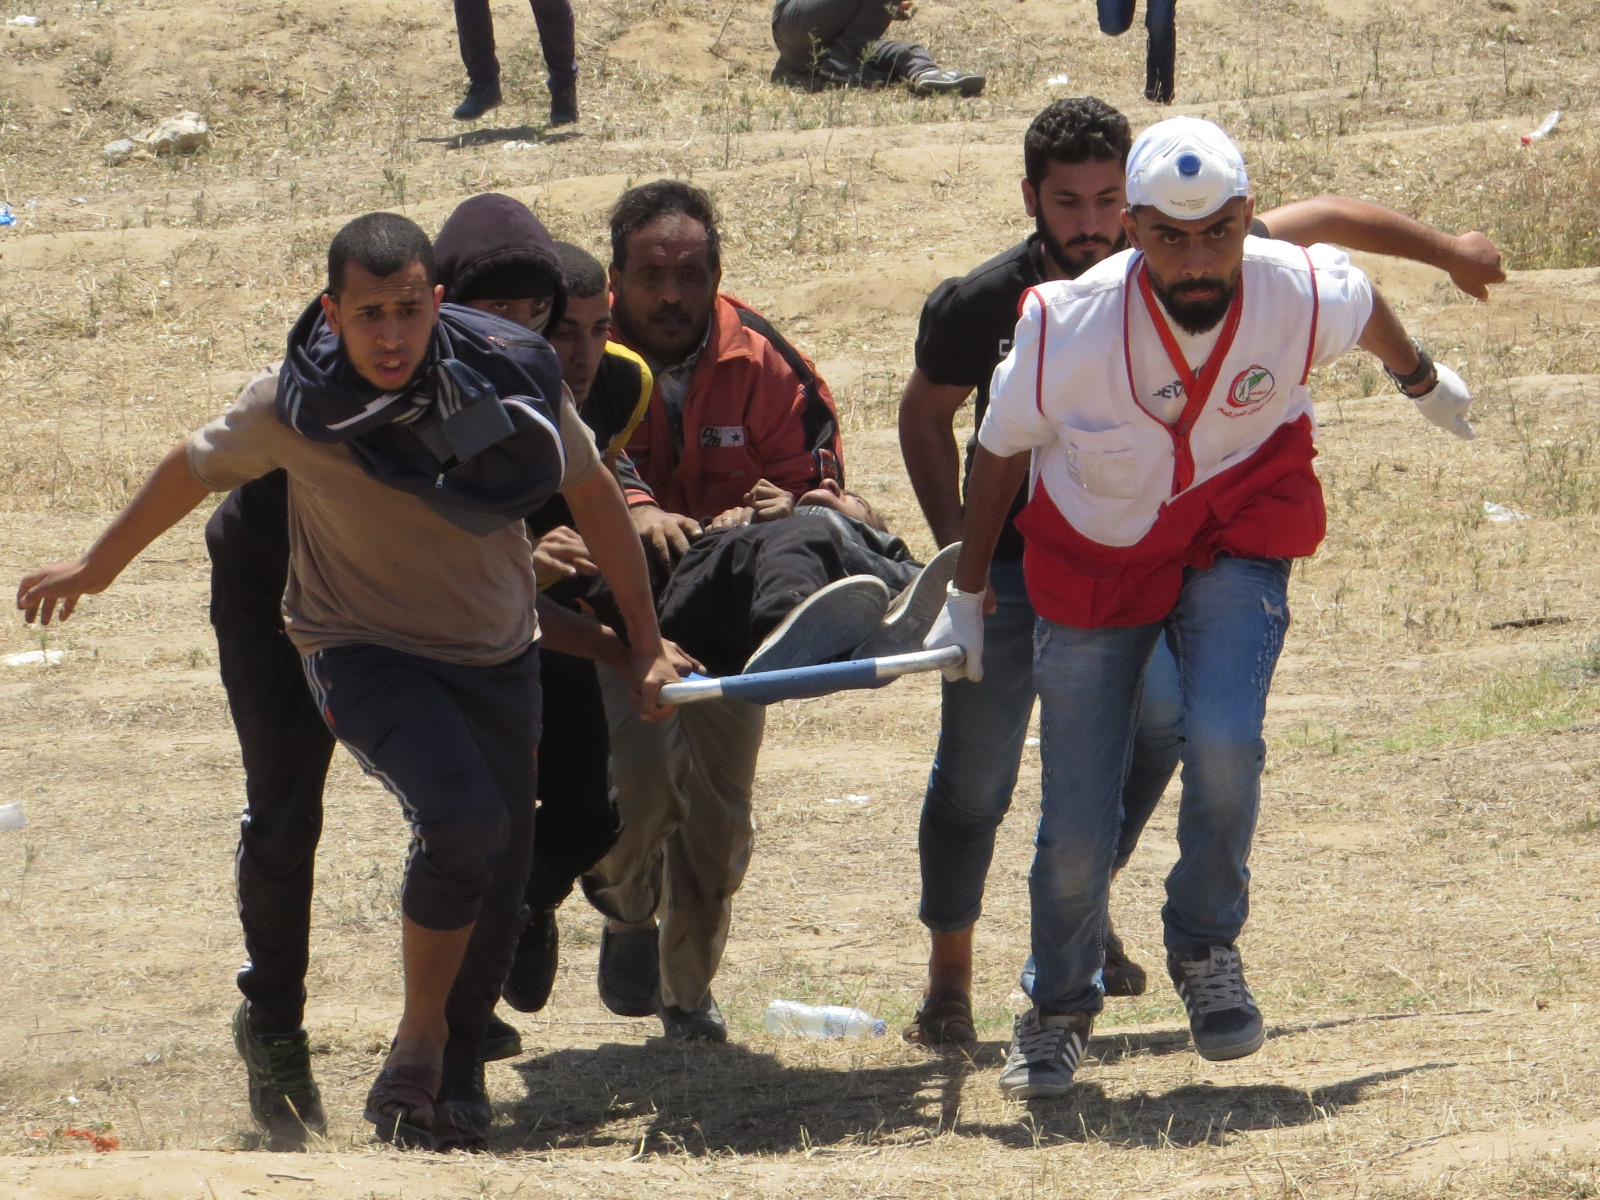 Civilian Wounded near the border fence in Central Gaza Strip